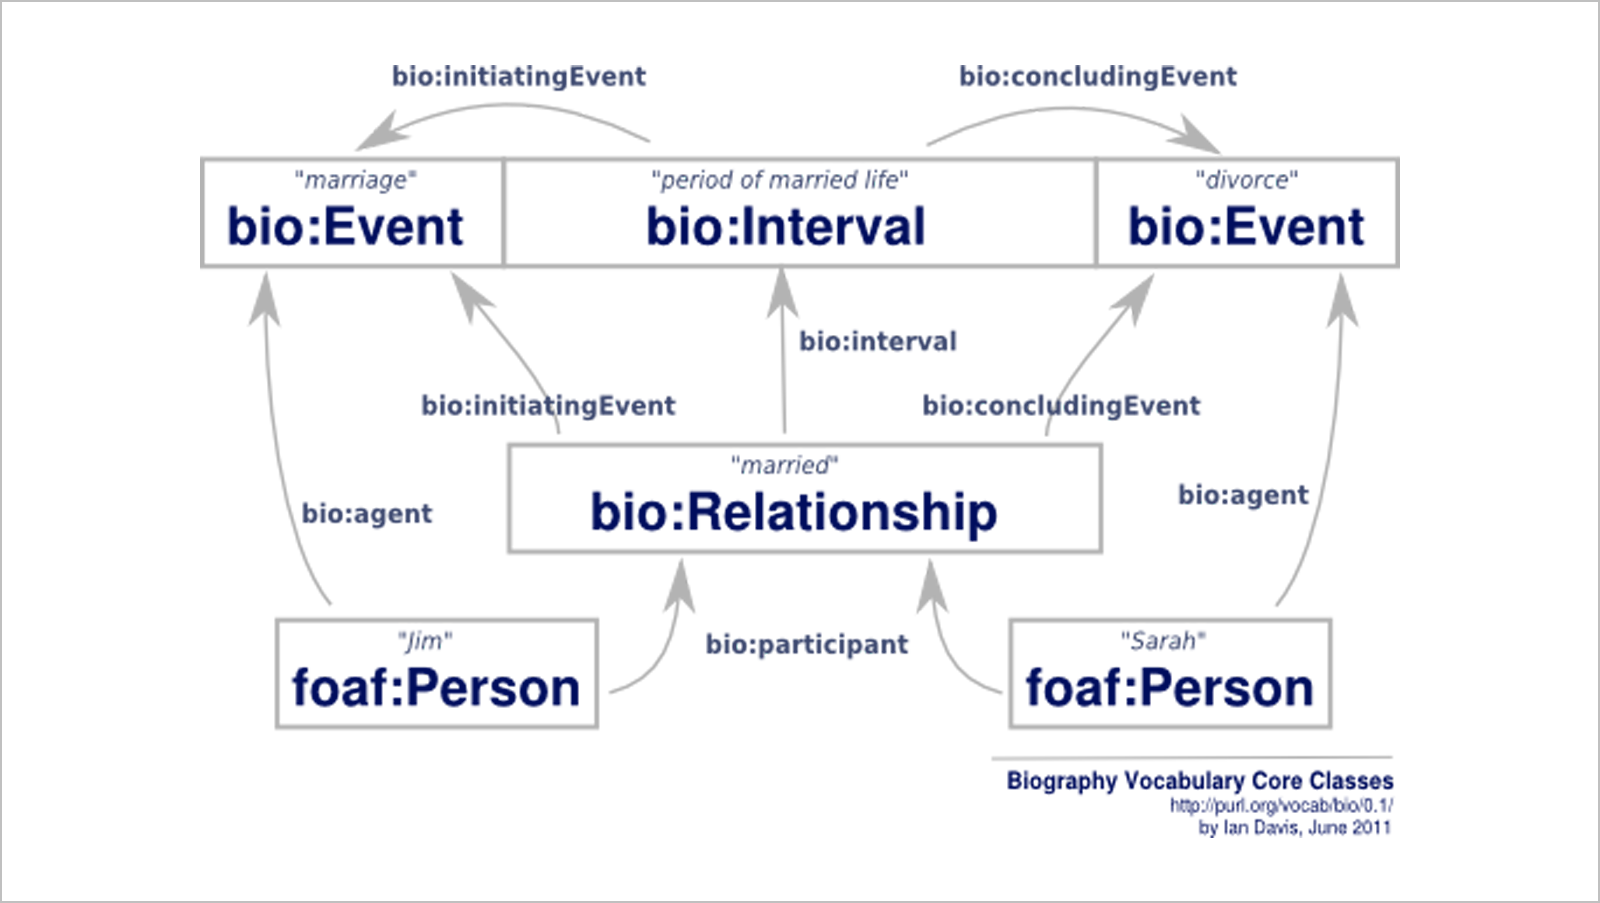 Technology: Bio, a standard for simple biographical information